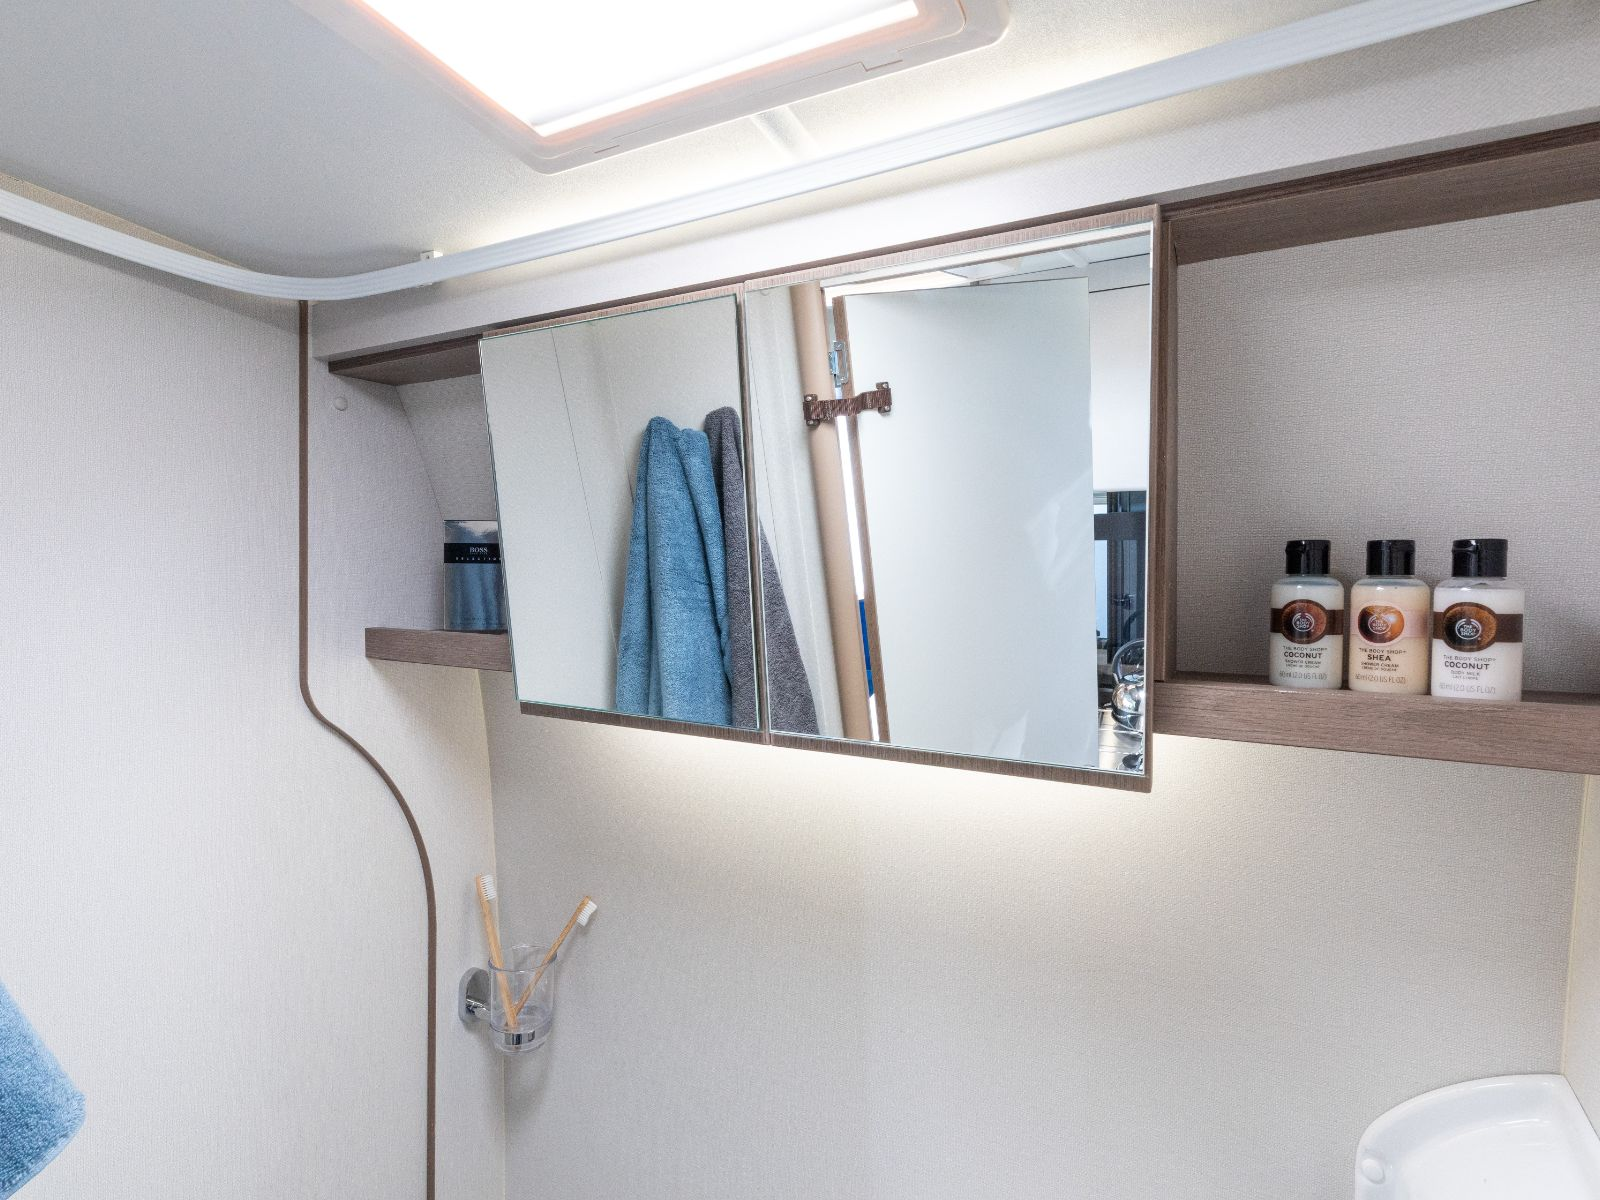 Bathroom mirrors with towels and assortment of toiletries'